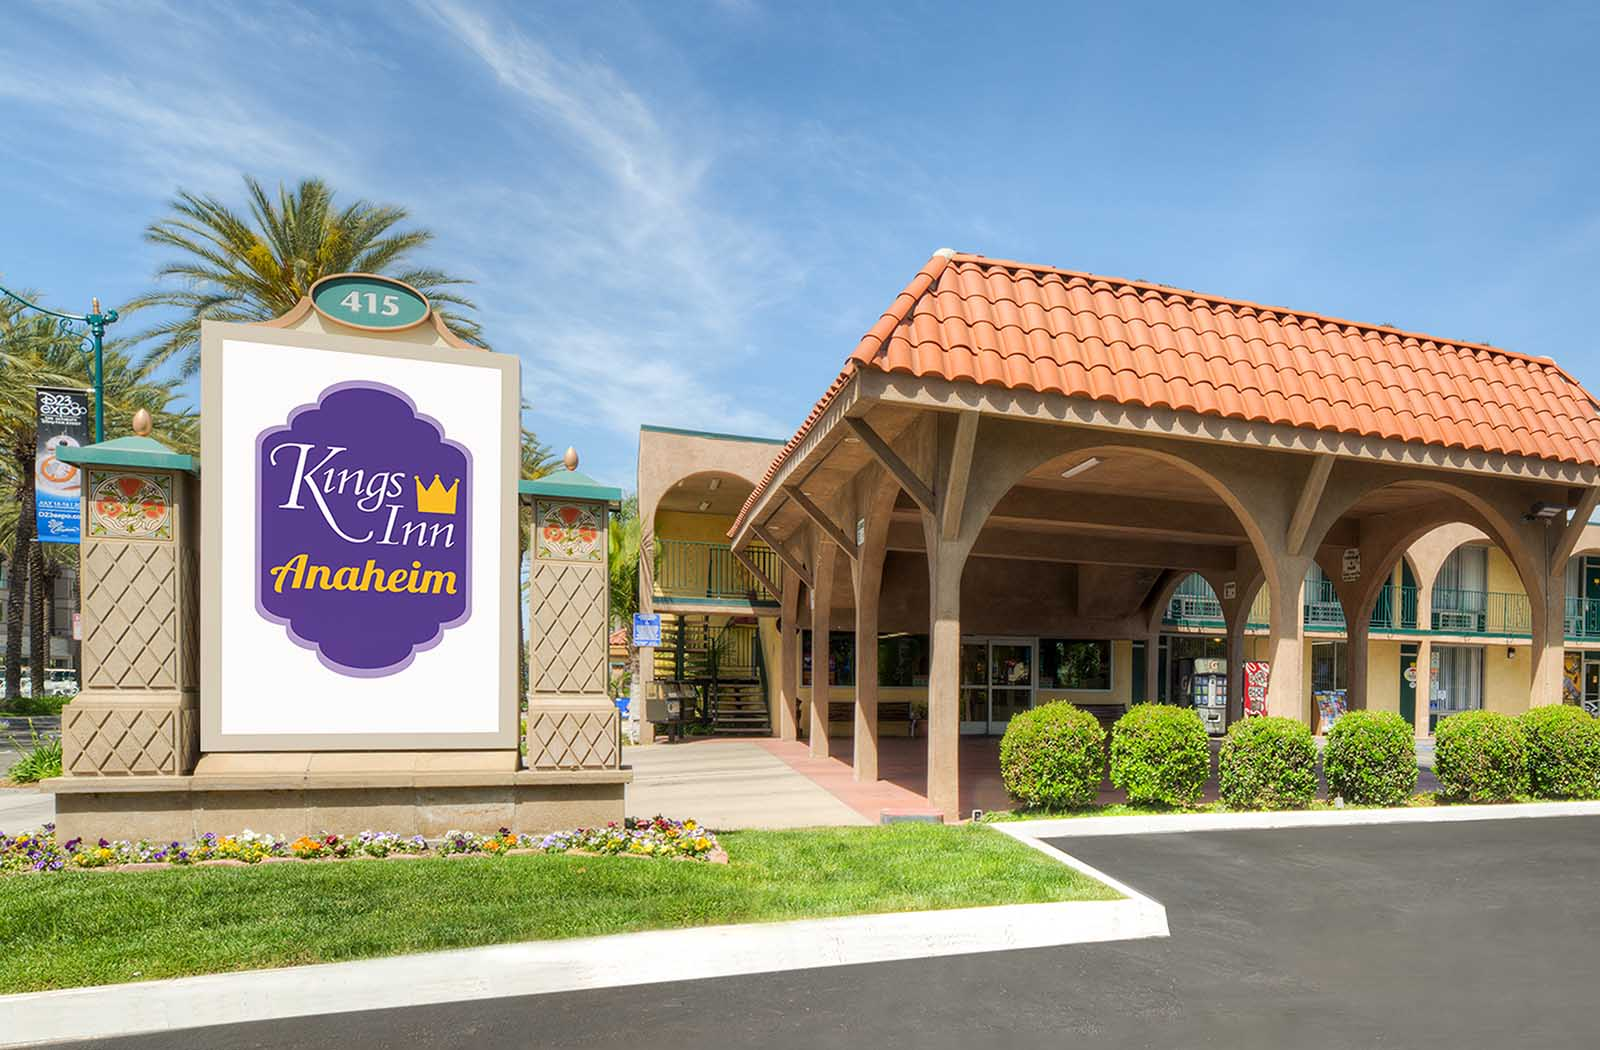 Kings-Inn-Anaheim-formerly-Super-8-Anaheim_0000_Introducing-KingsInn-Anaheim